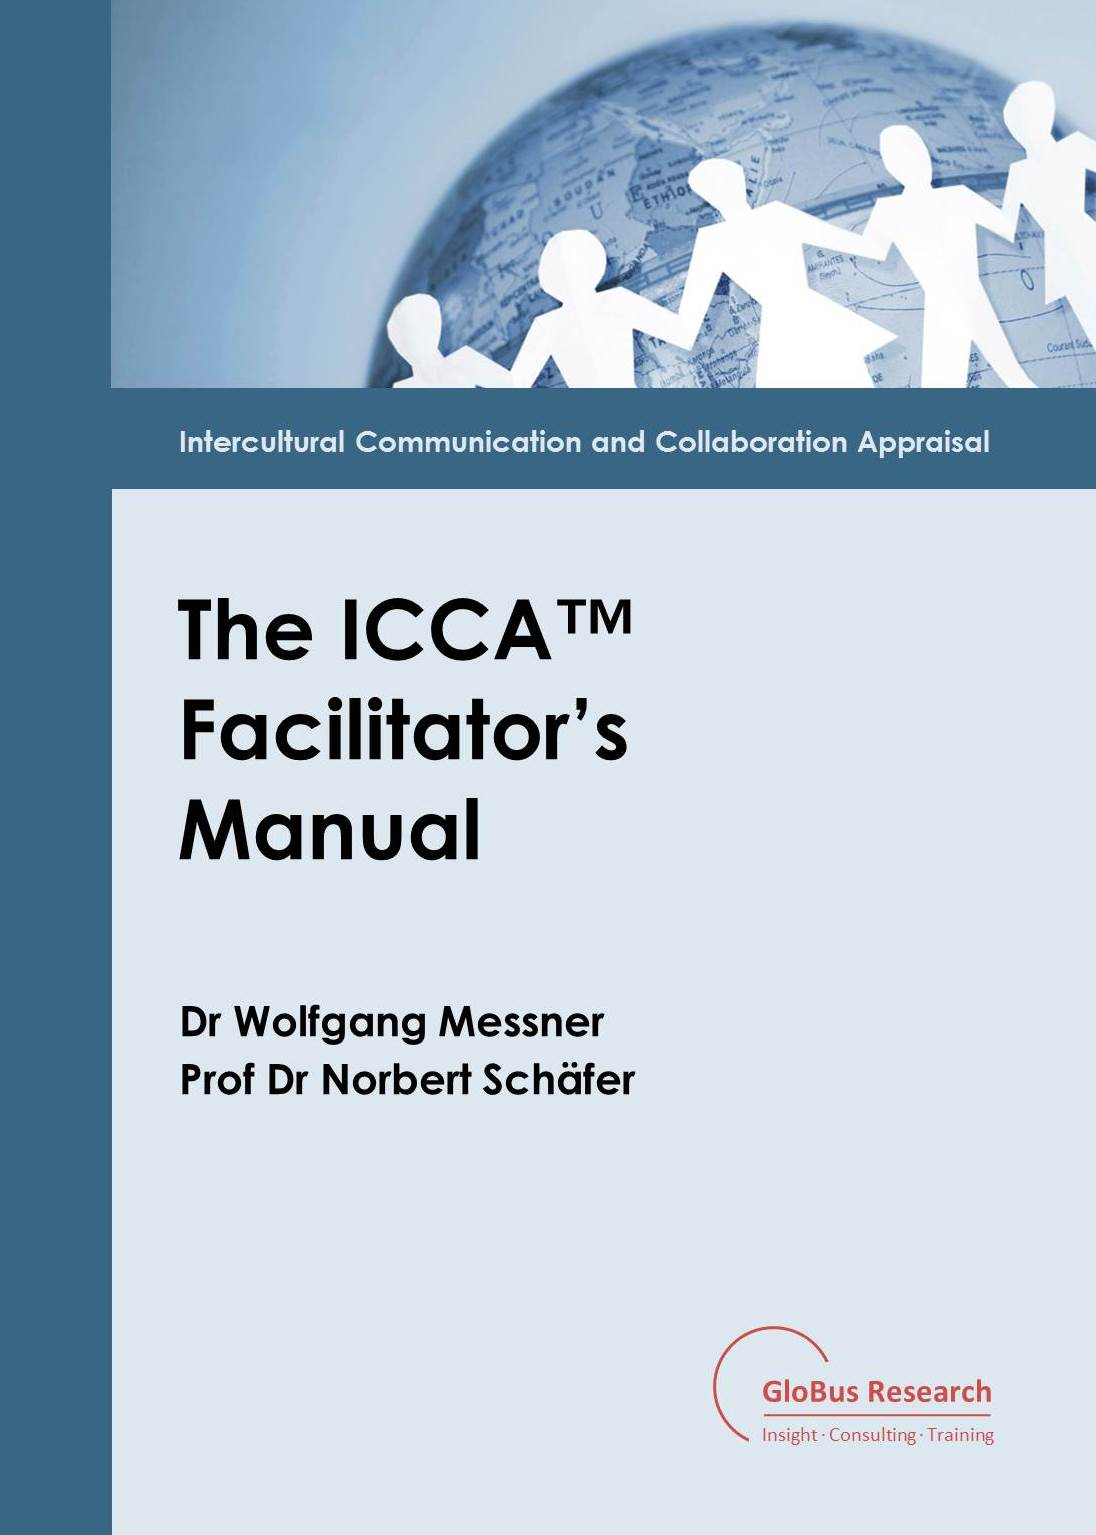 Intercultural Communication and Collaboration Appraisal